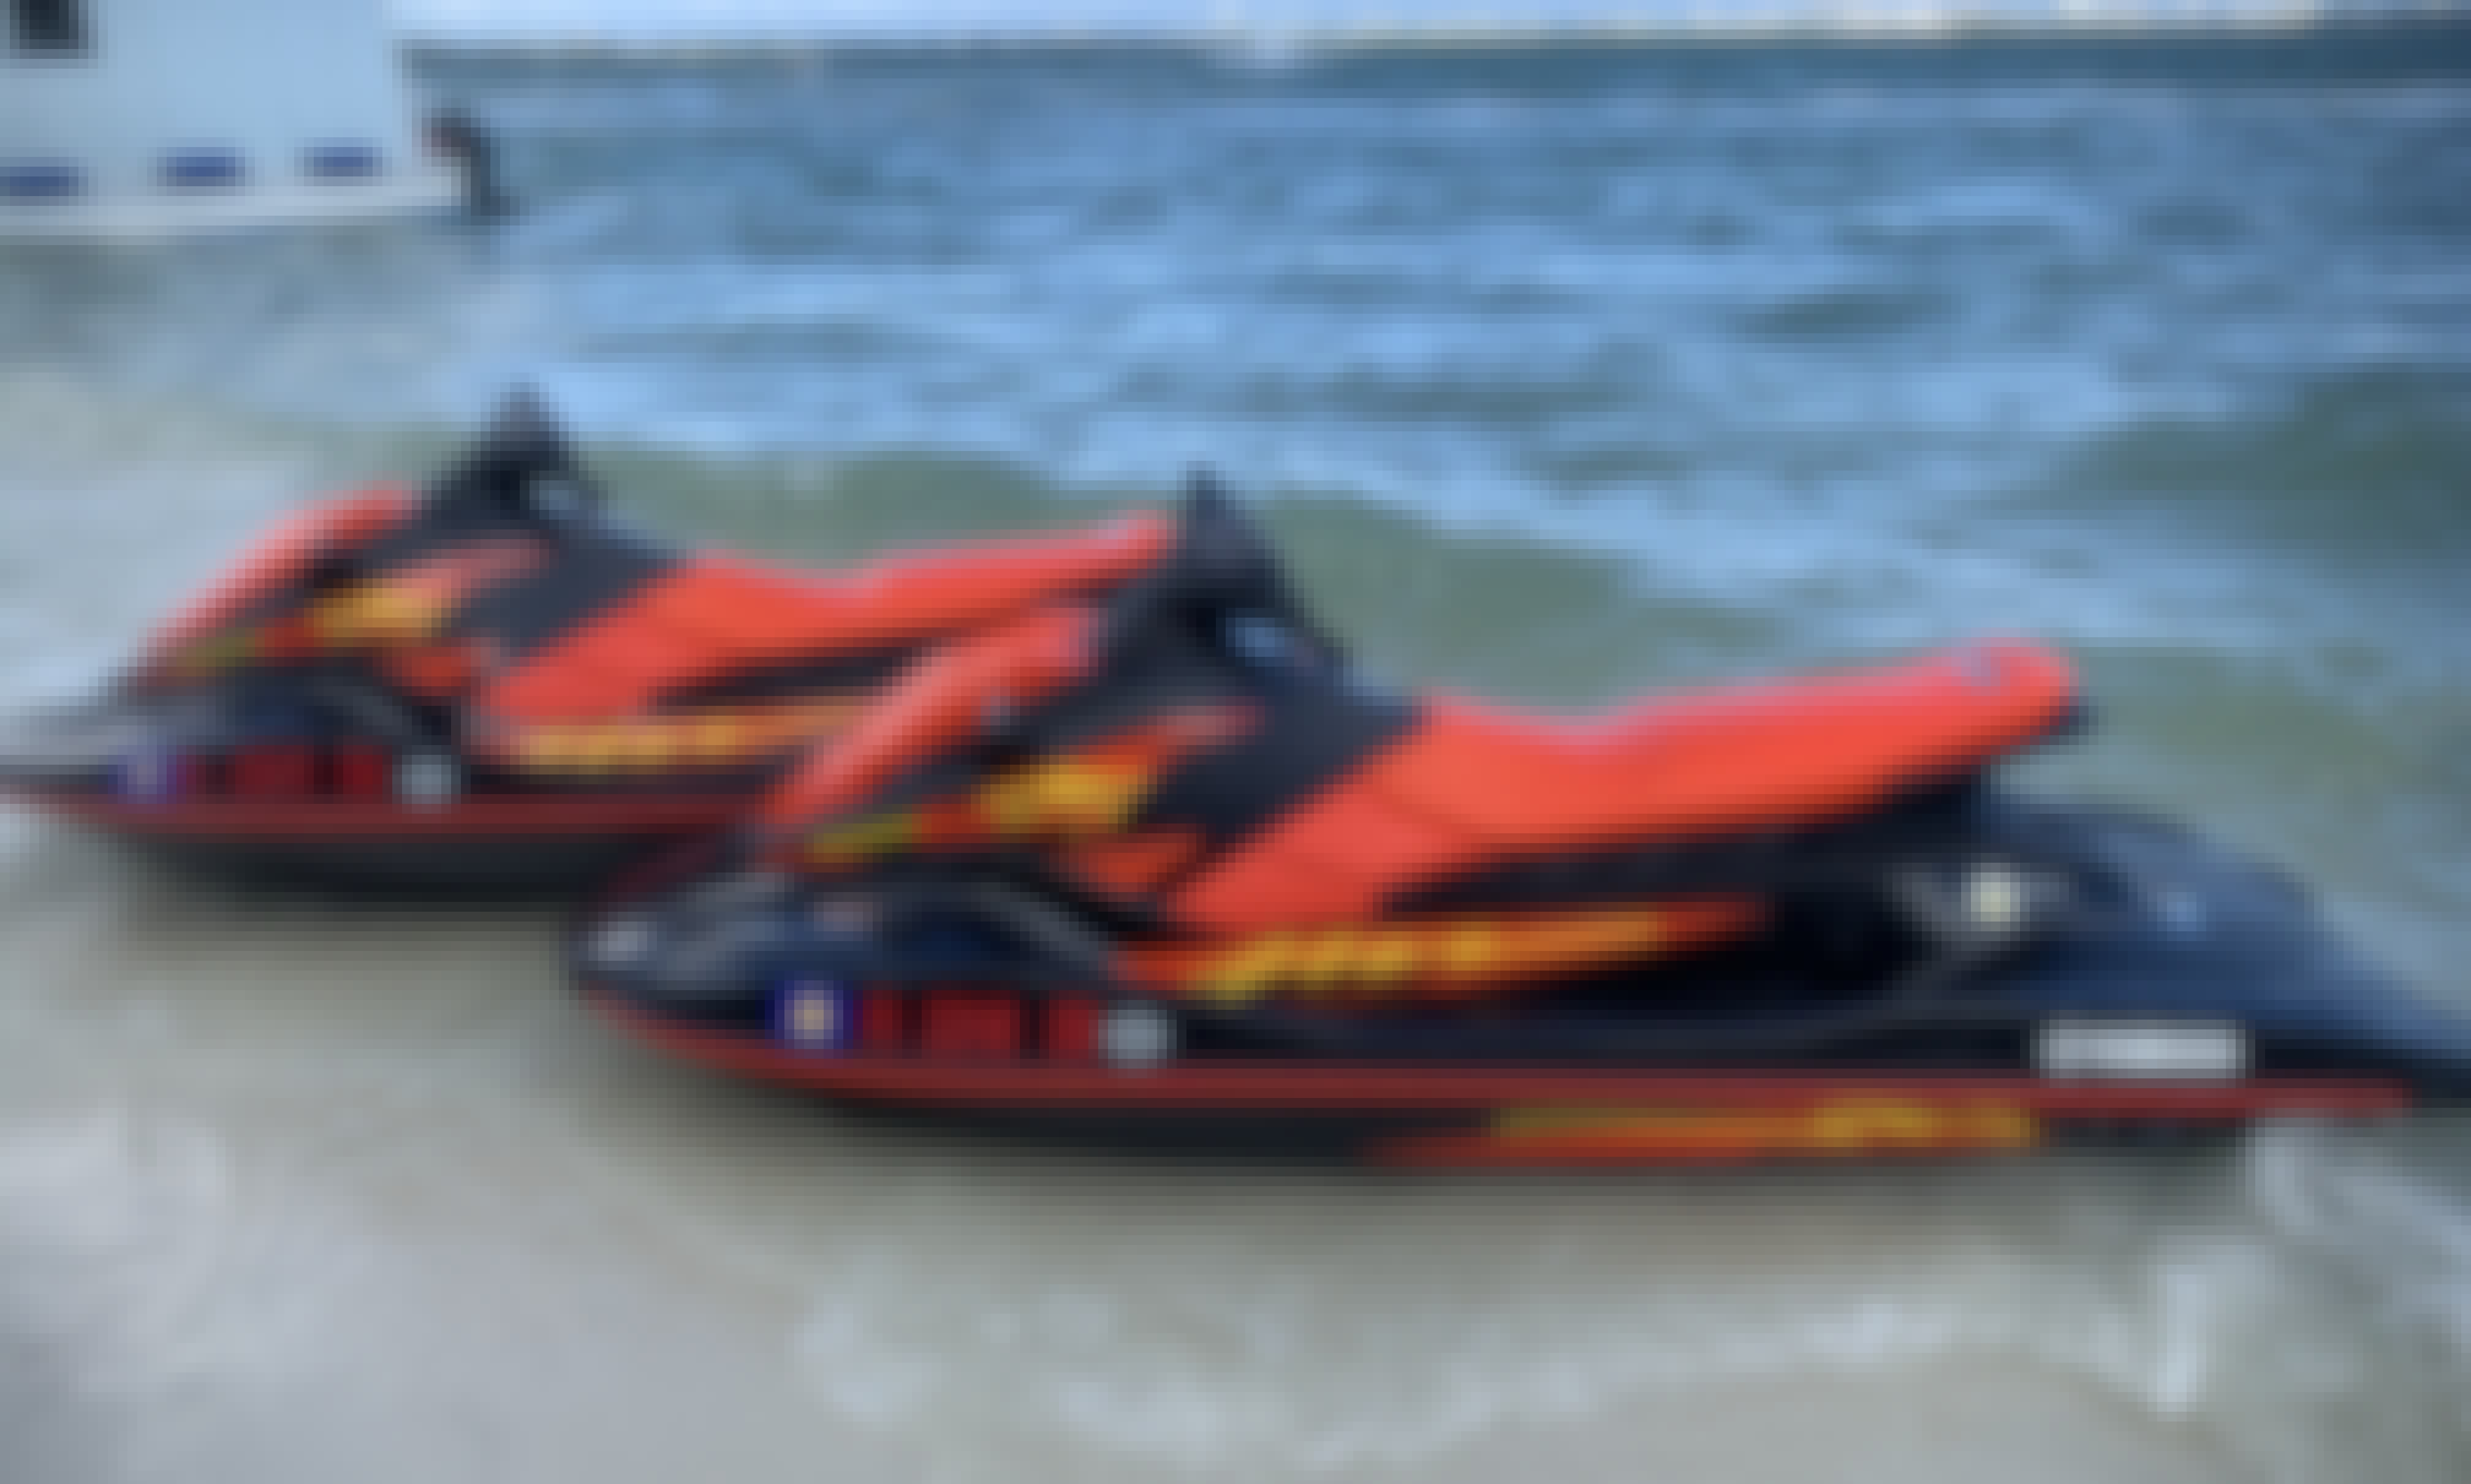 2021 Yamaha Ex Sport Rentals All Inclusive in Fort Lauderdale